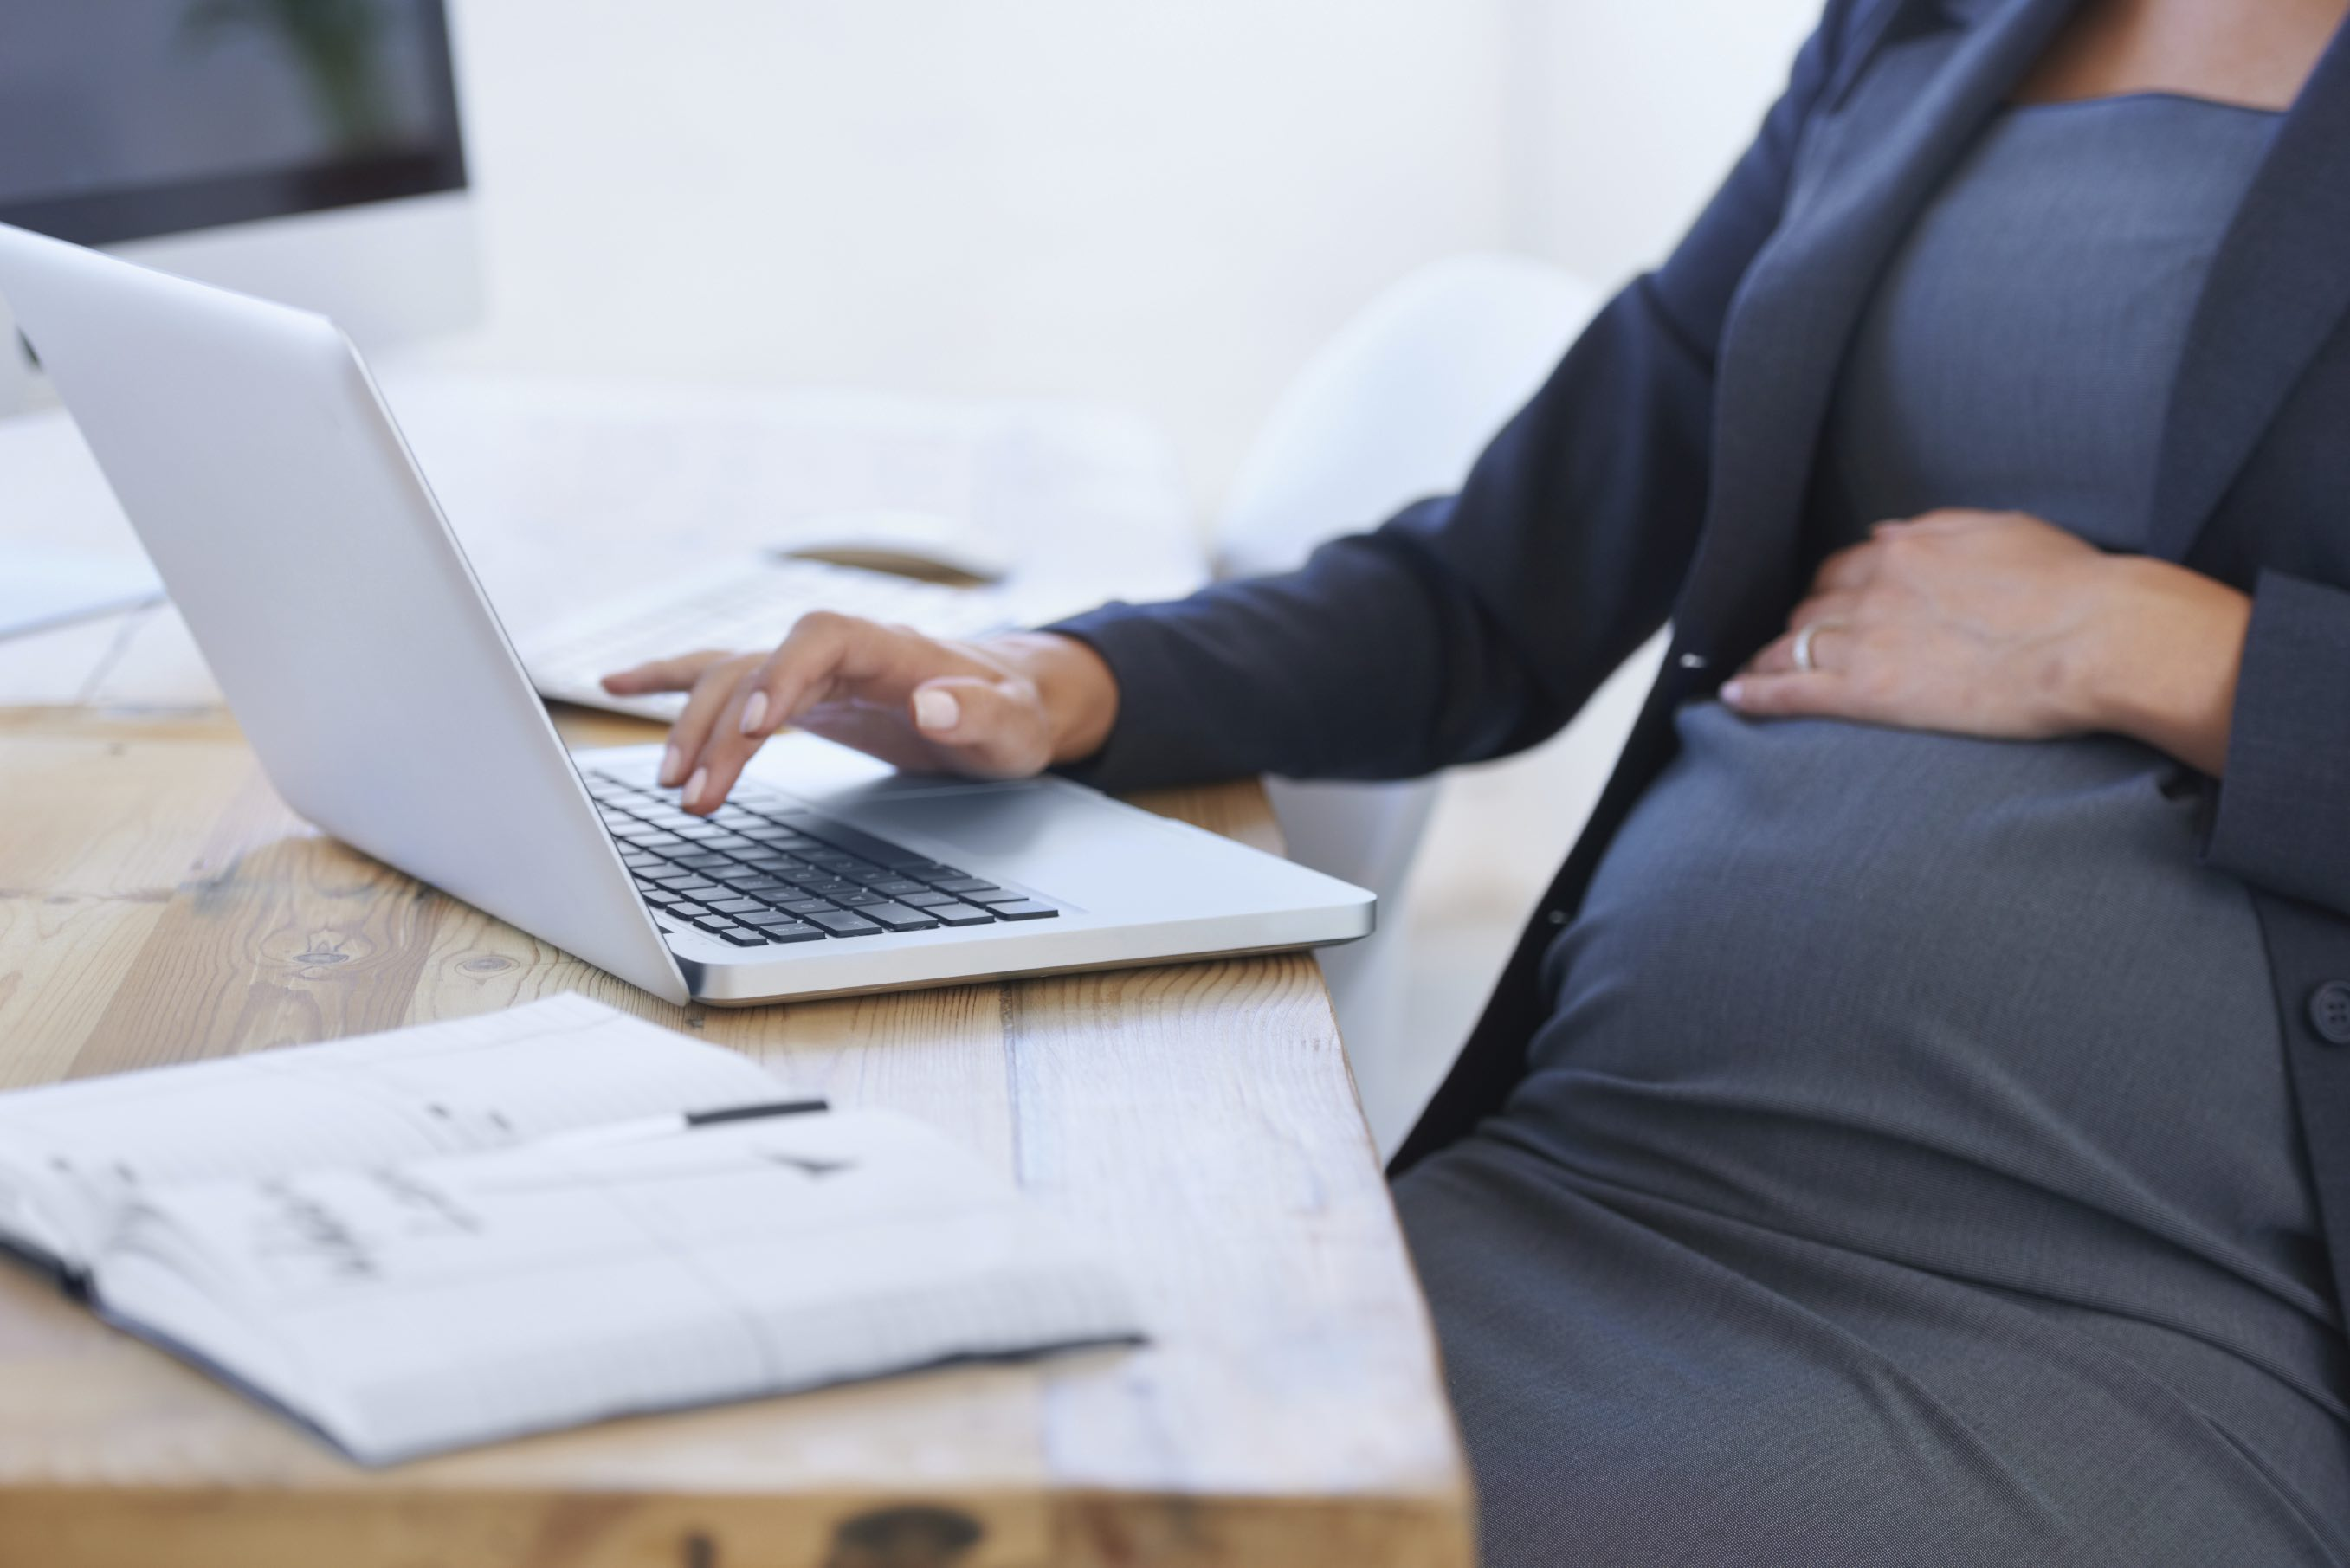 What to Expect When You're Expecting (at Work)